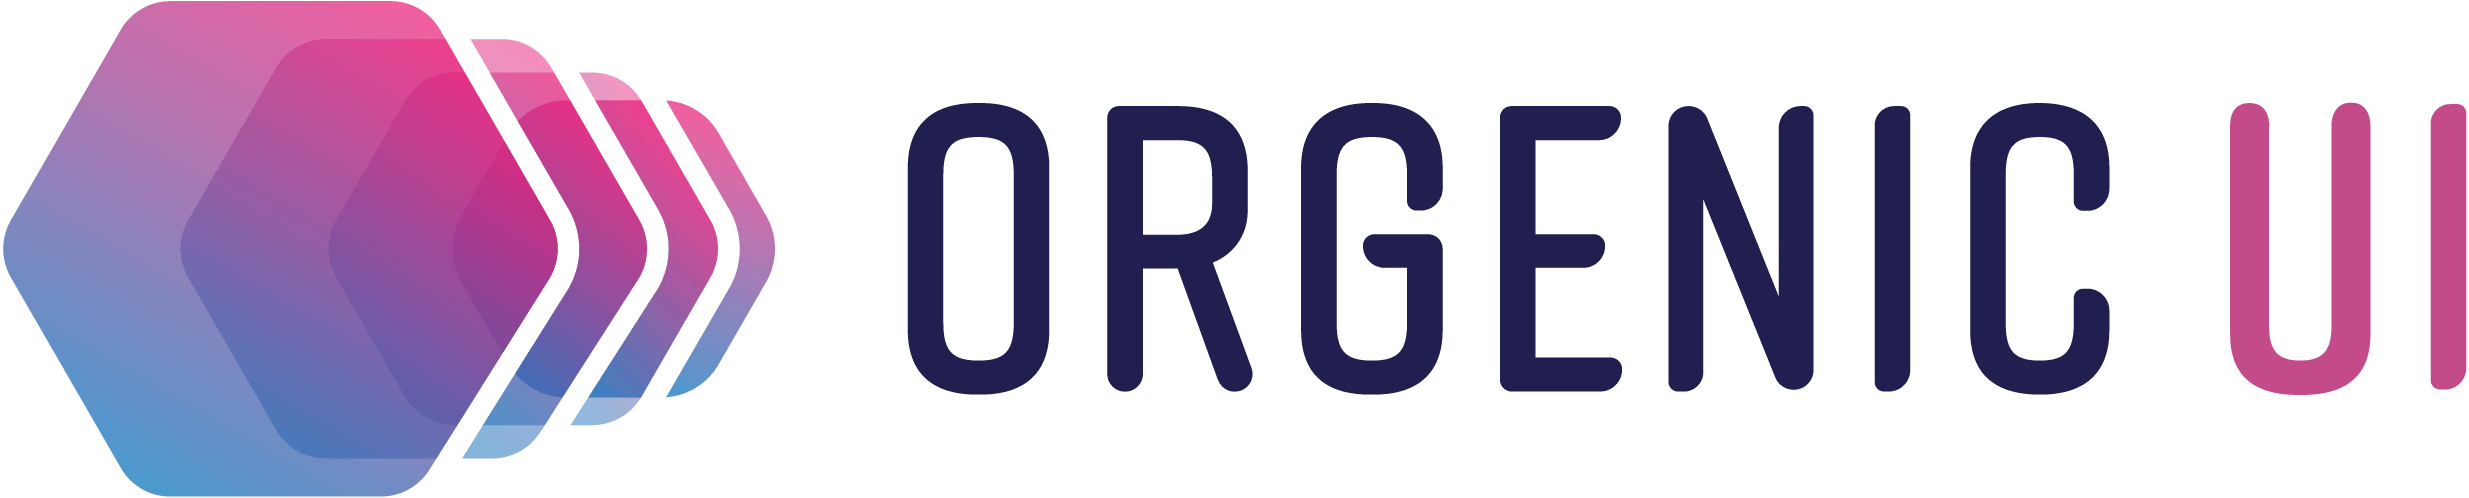 ORGENIC.ORG